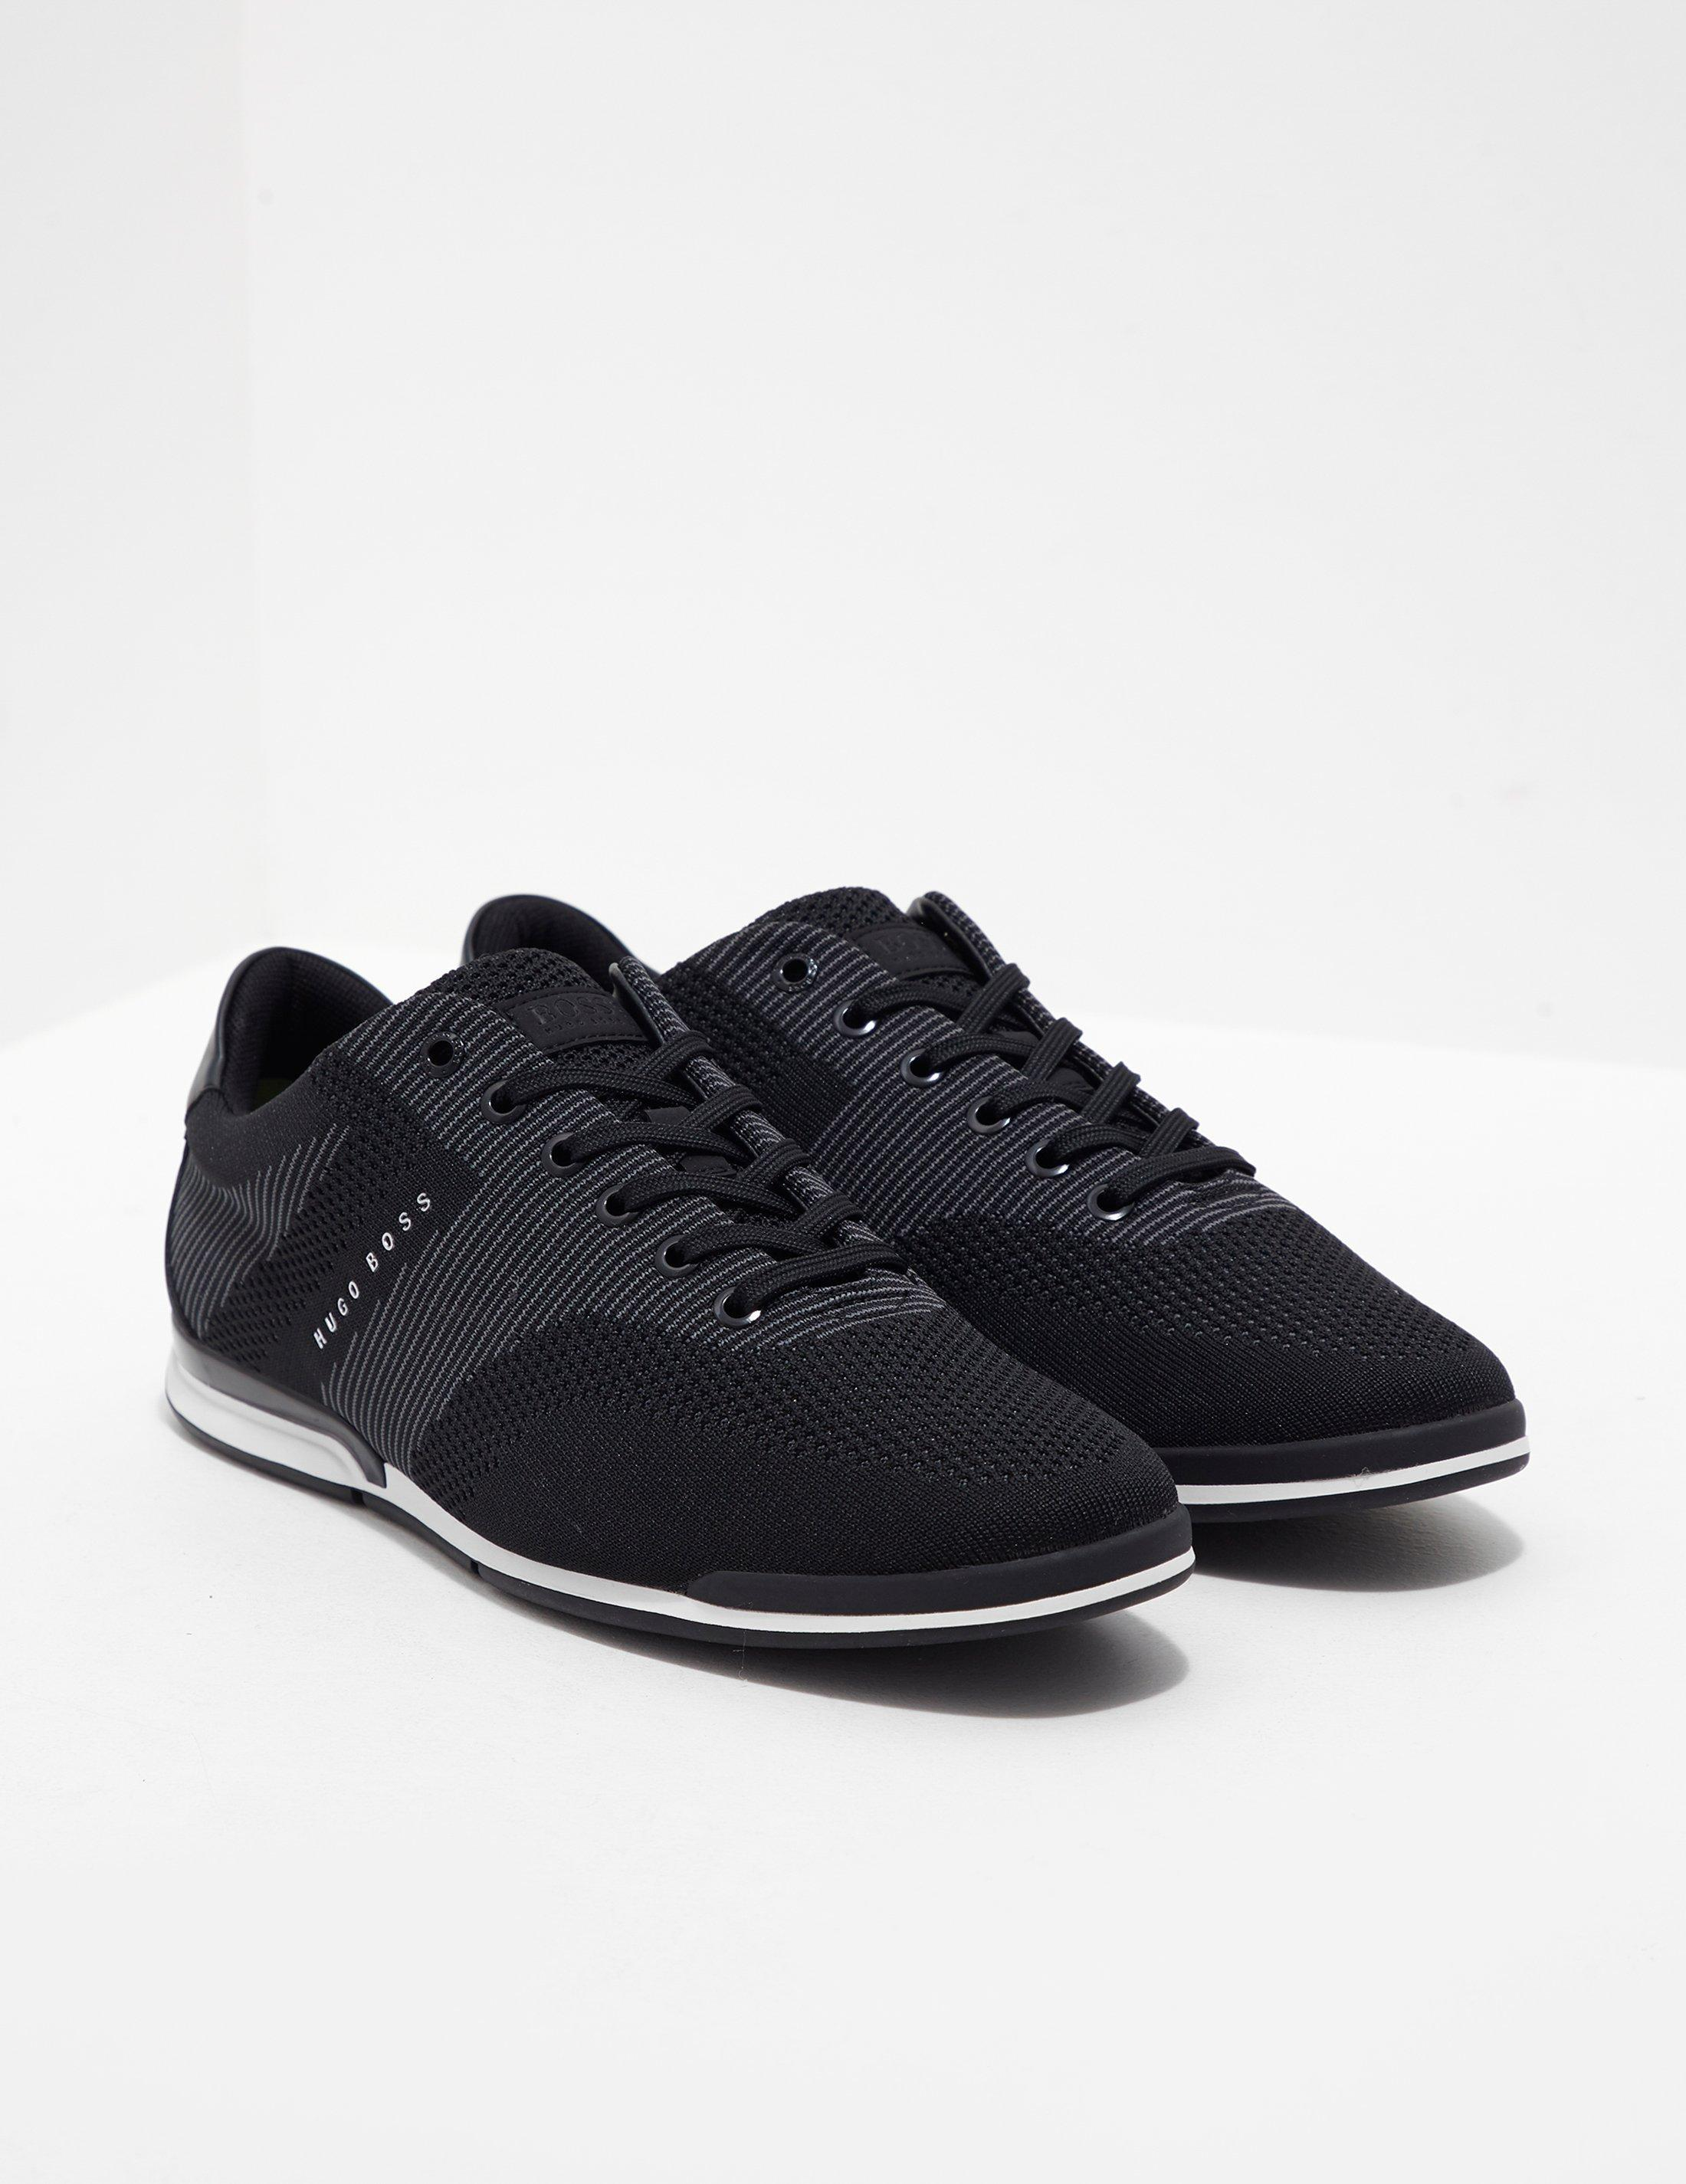 HUGO BOSS Saturn Golf Sneaker in cSmYTE